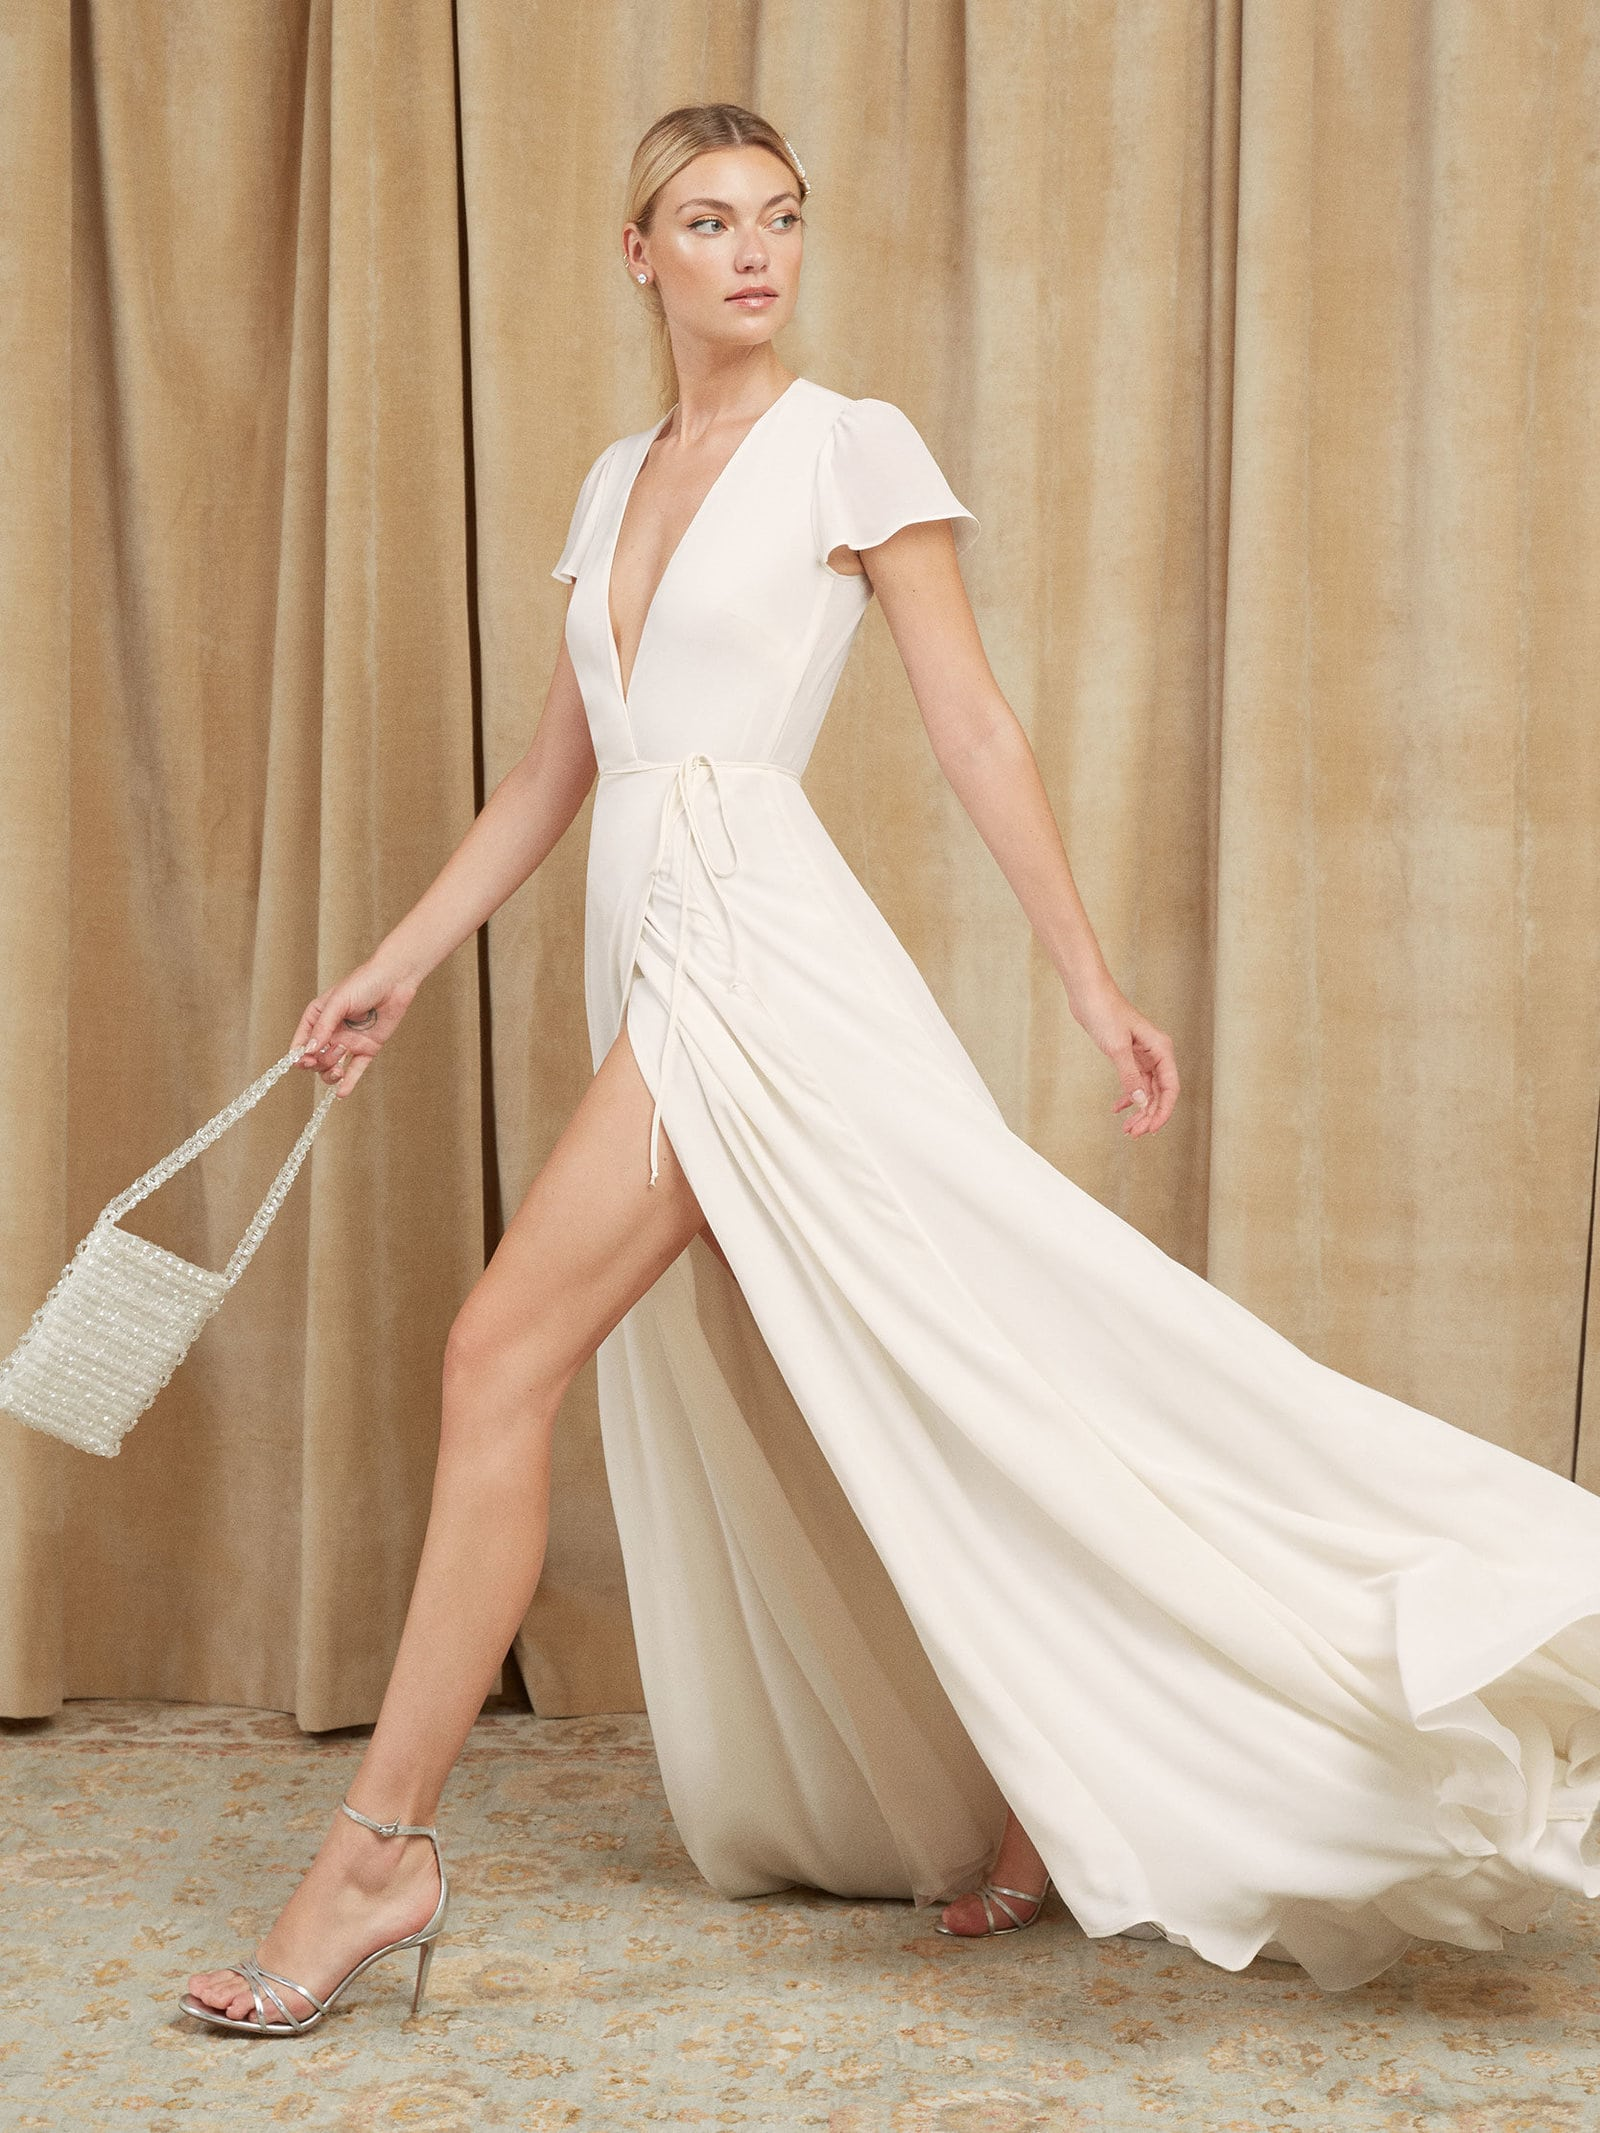 A woman wears a white wrap-style dress with a plunging neckline, flutter short sleeves and a full, flowing skirt